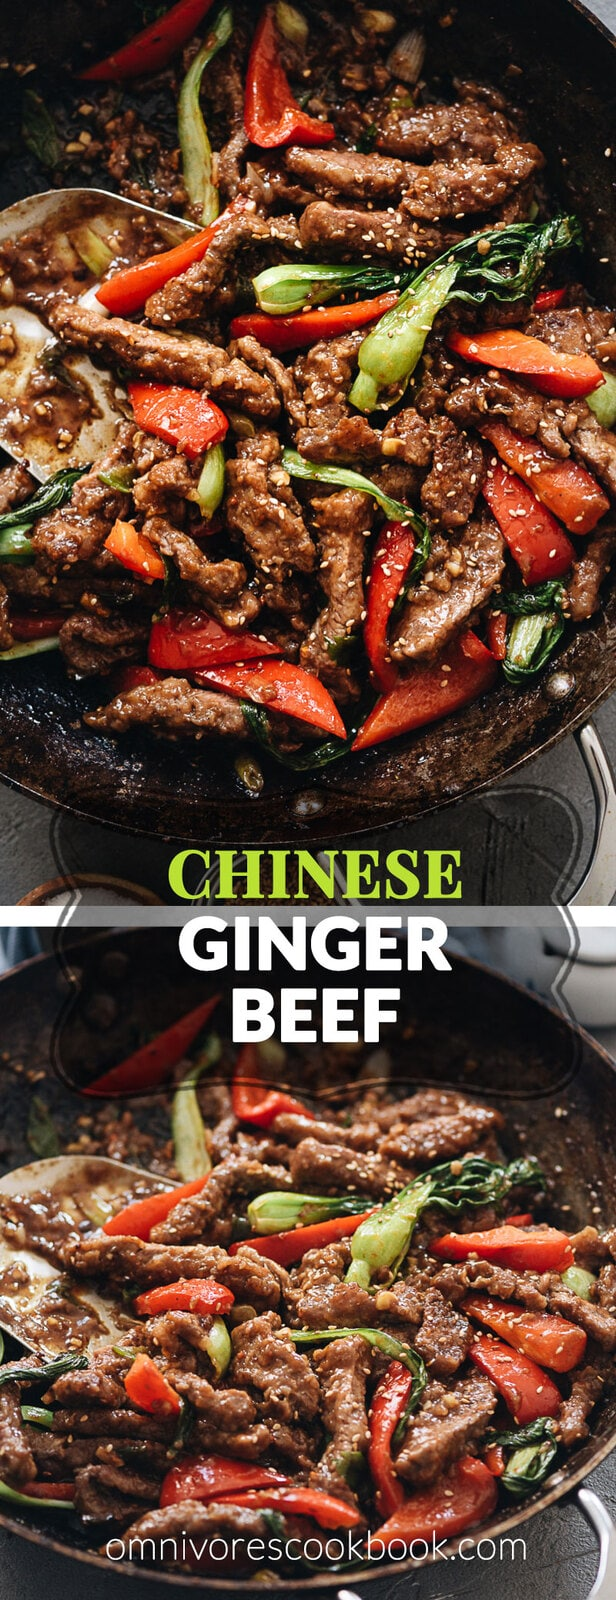 Ginger Beef | Crispy juicy beef, crunchy bell peppers, and tender baby bok choy are tossed in a rich sauce that is sweet, spicy, sour, and peppery. Pair this ginger beef stir fry with a bowl of rice to soak up the deep, arresting flavors of the sauce, and you'll have a princely takeout favorite with ten times the taste! {Gluten-free adaptable}